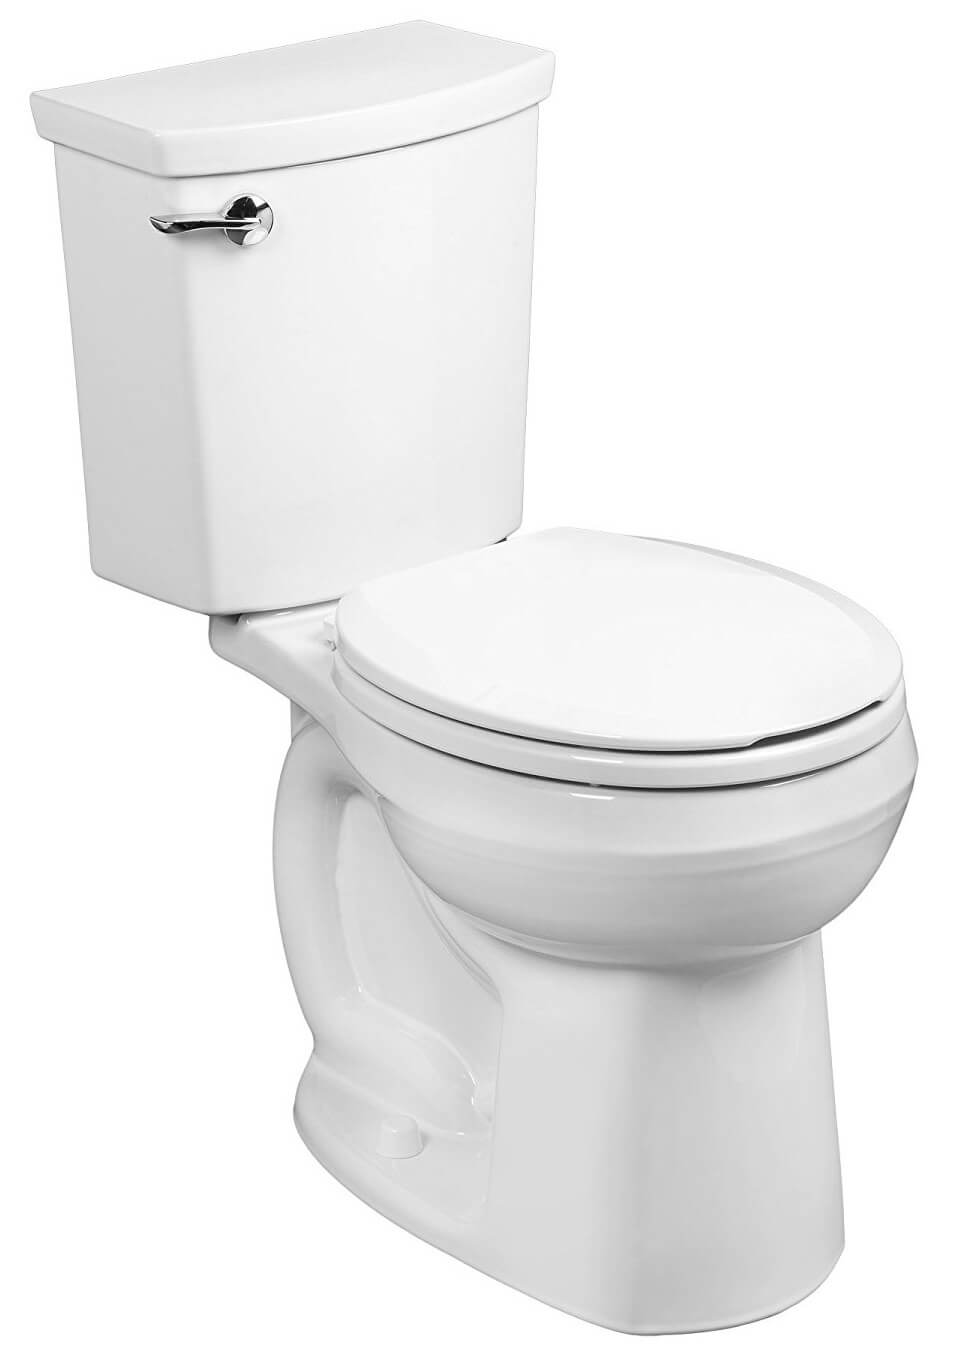 Recommended] Best Flushing Toilet of 2018 | Guide & Reviews